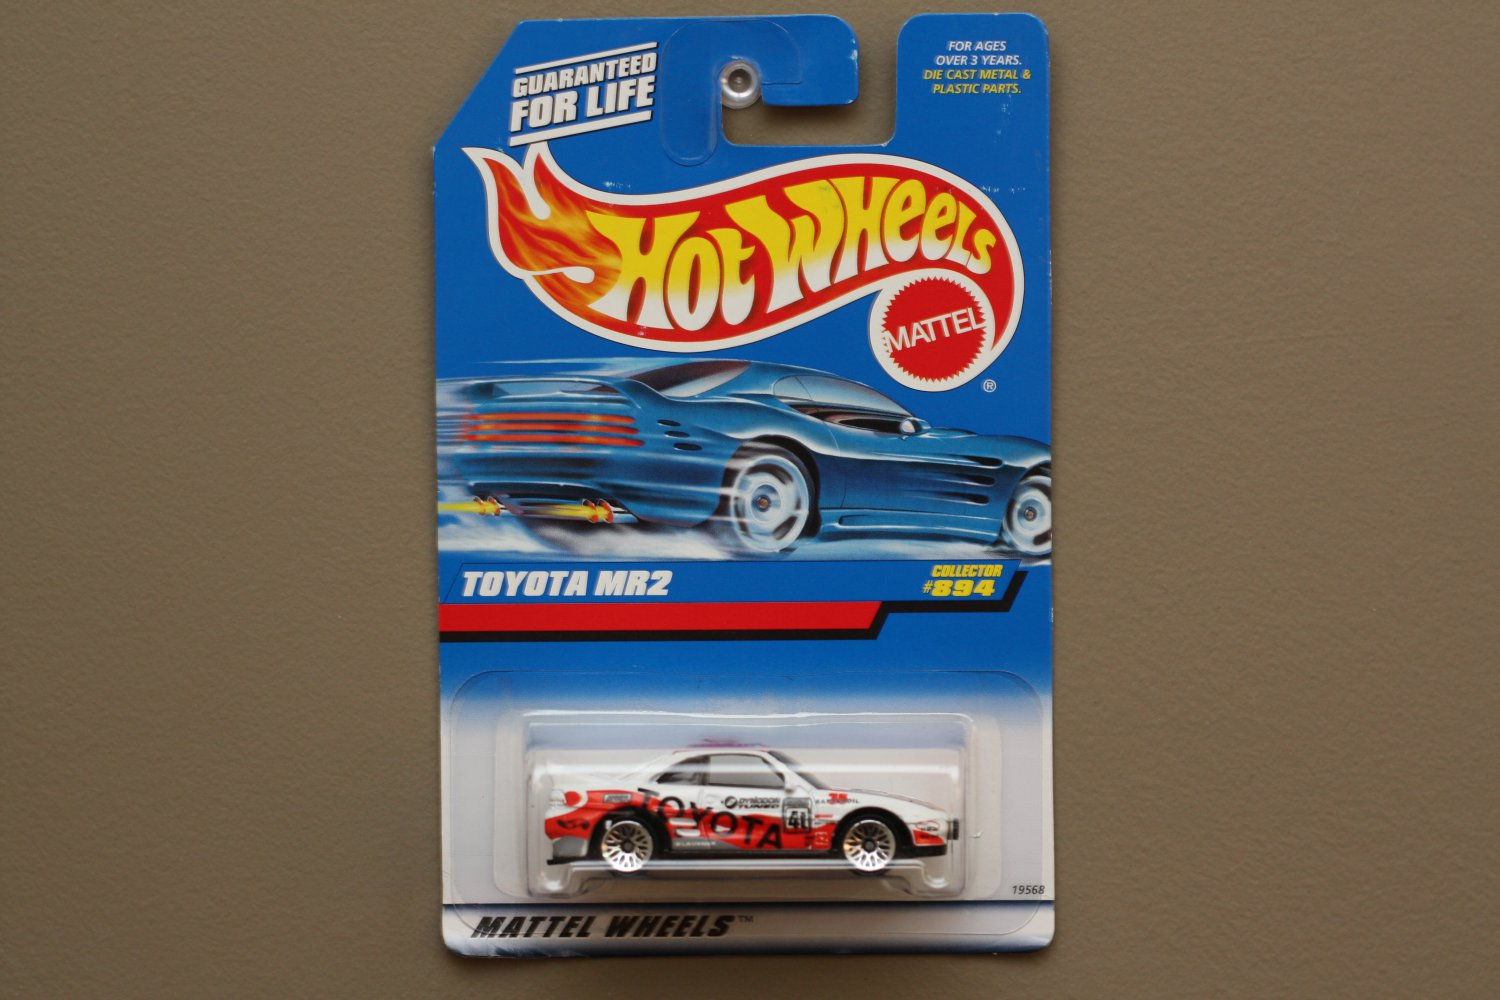 Hot Wheels 1998 Collector Series Toyota MR2 (white)